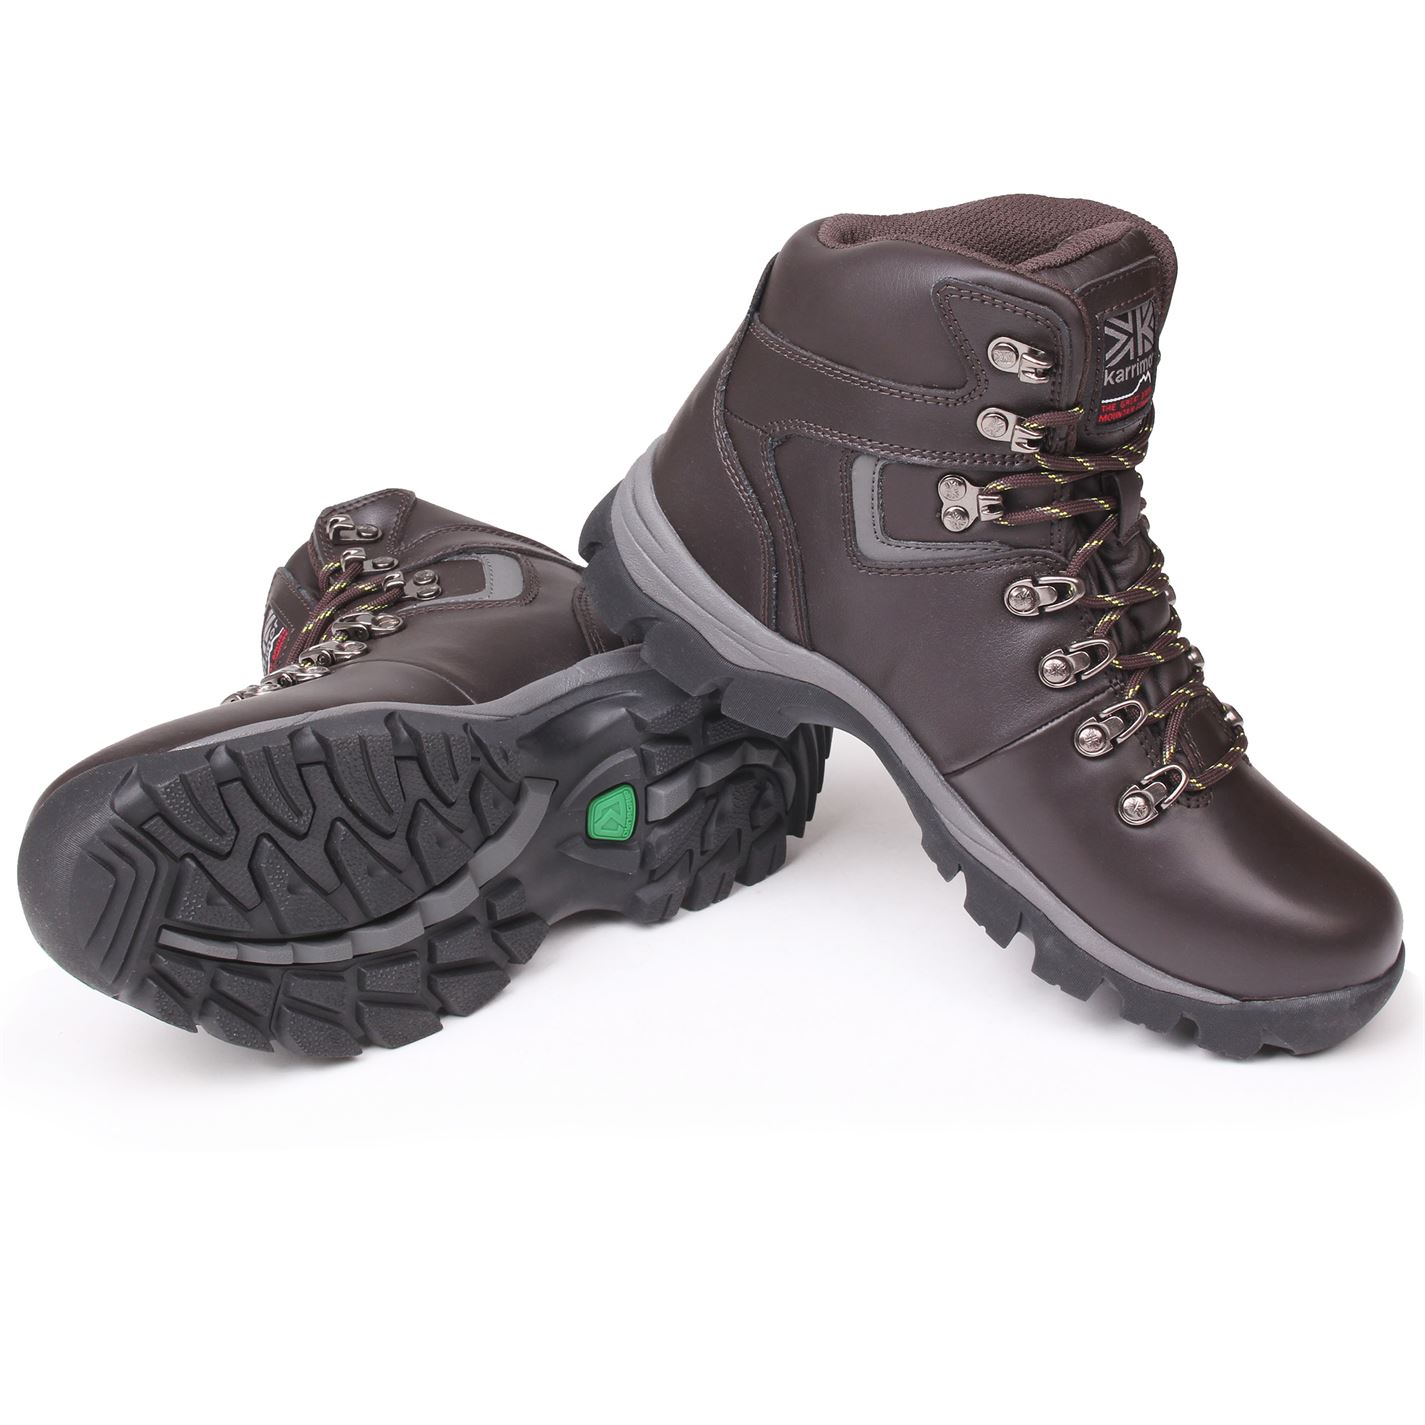 Karrimor Womens Womens Womens Skiddaw Walking Boots Lace Up Waterproof Breathable shoes f7aa6b